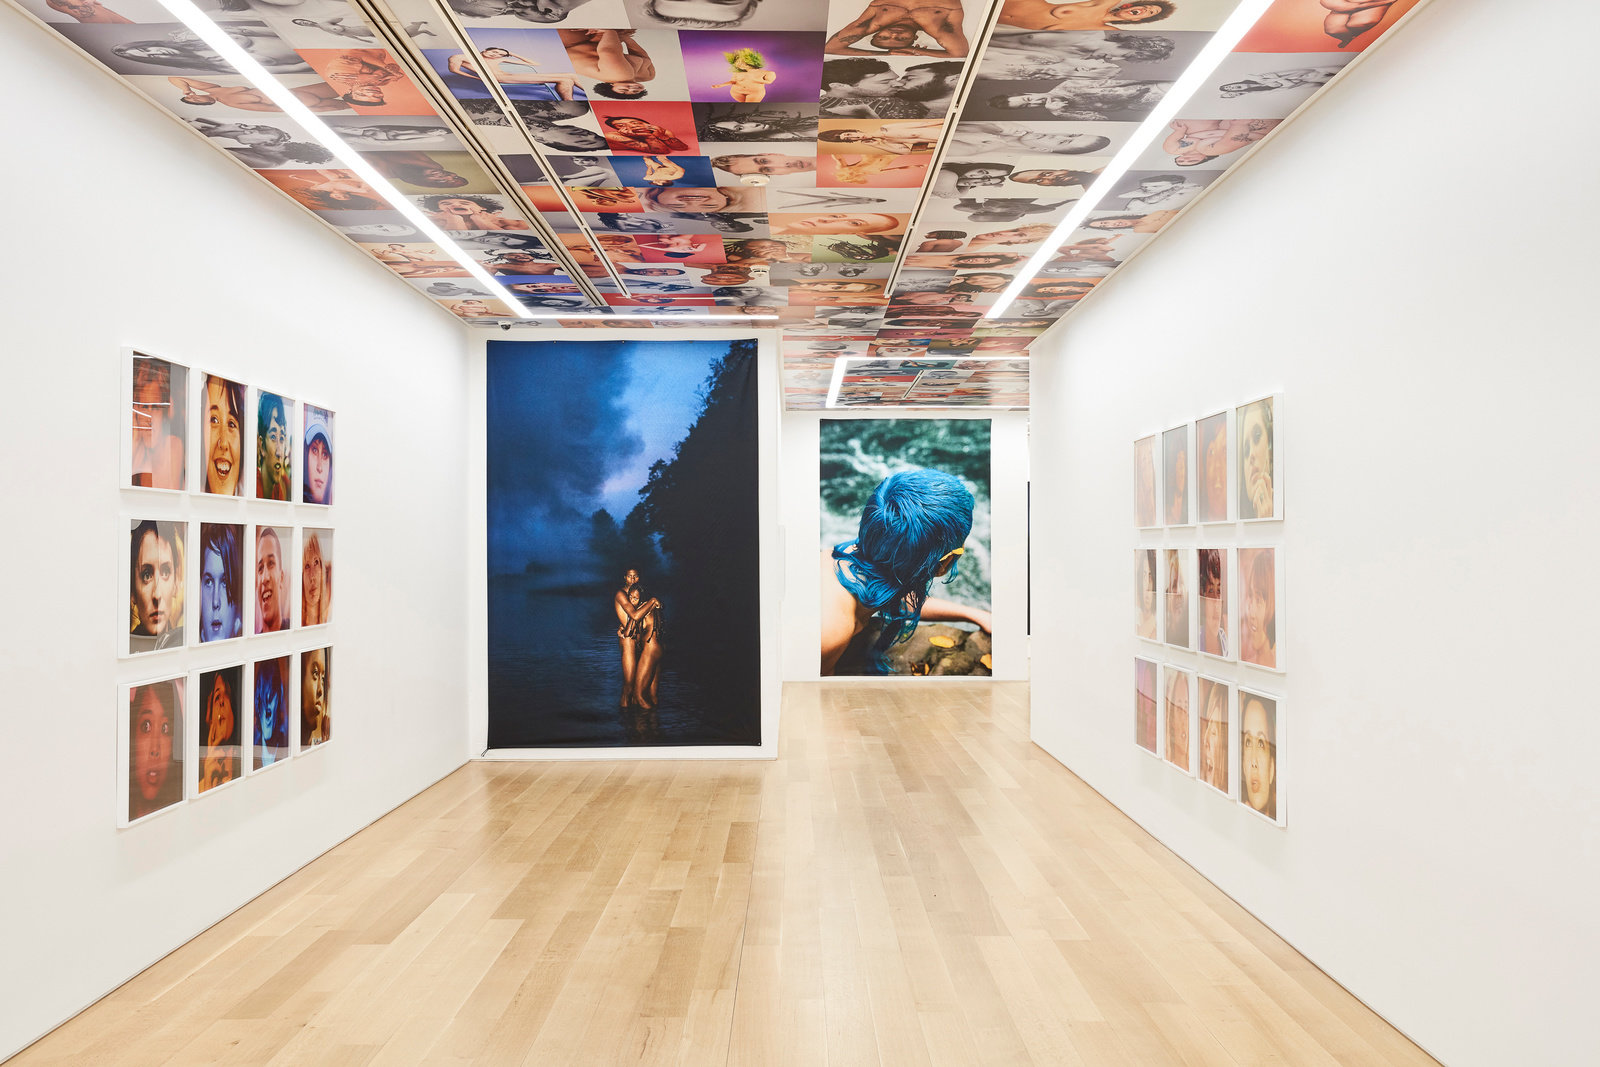 An installation view of Ryan McGinley photographs on the gallery walls and ceiling.